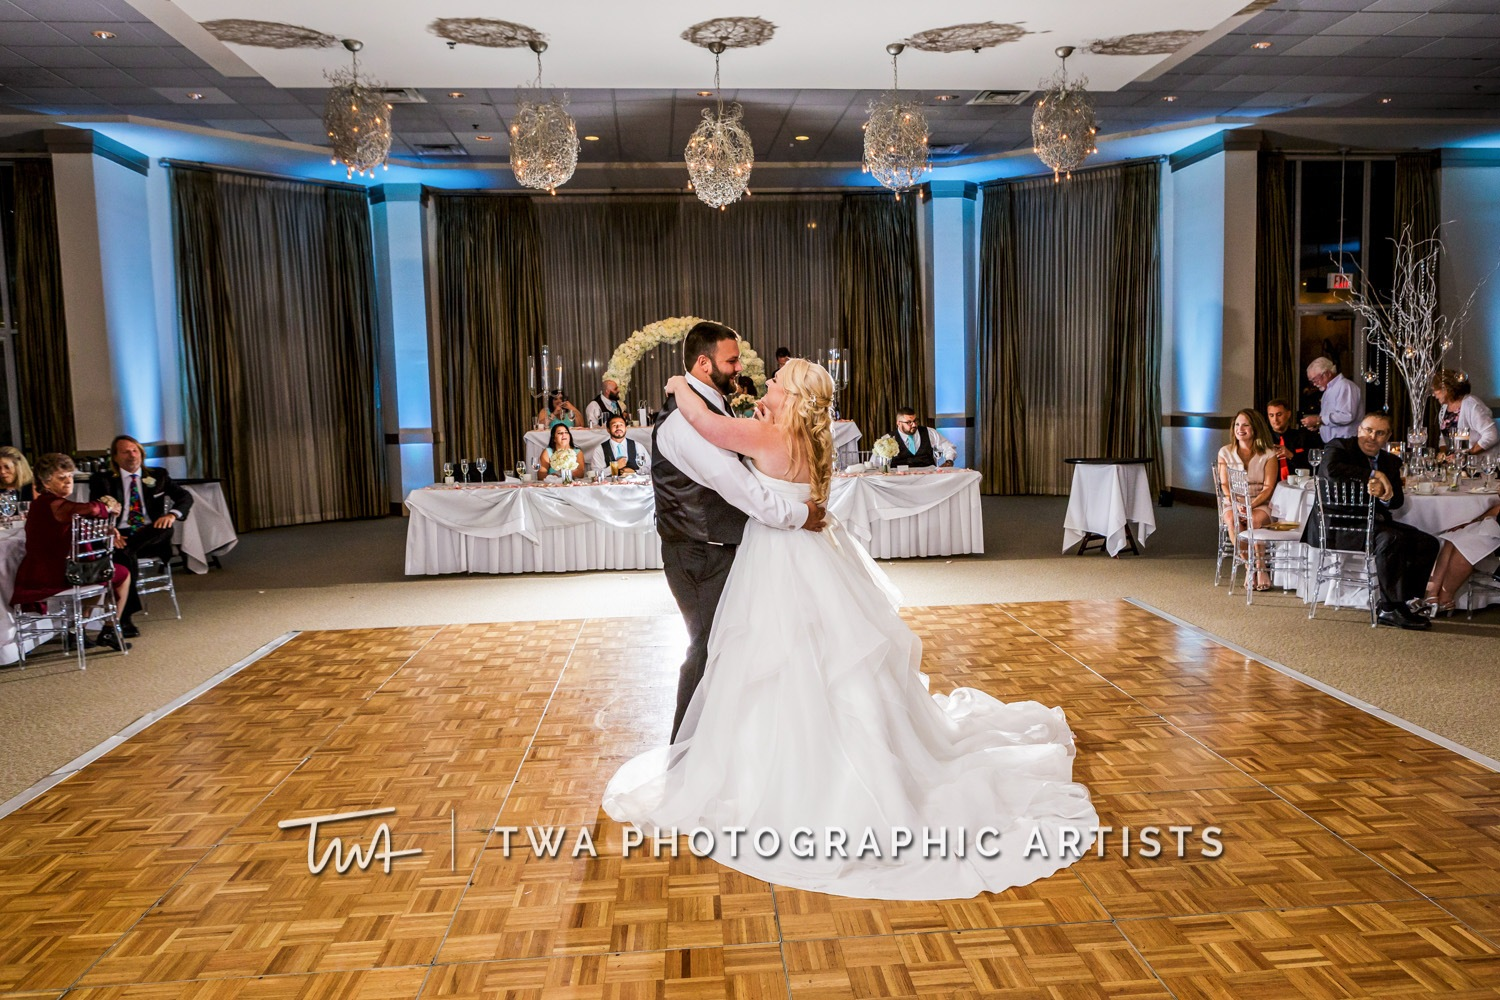 Chicago-Wedding-Photographer-TWA-Photographic-Artists-Belvedere-Banquets_Matz_Carter_HM_NS-0570